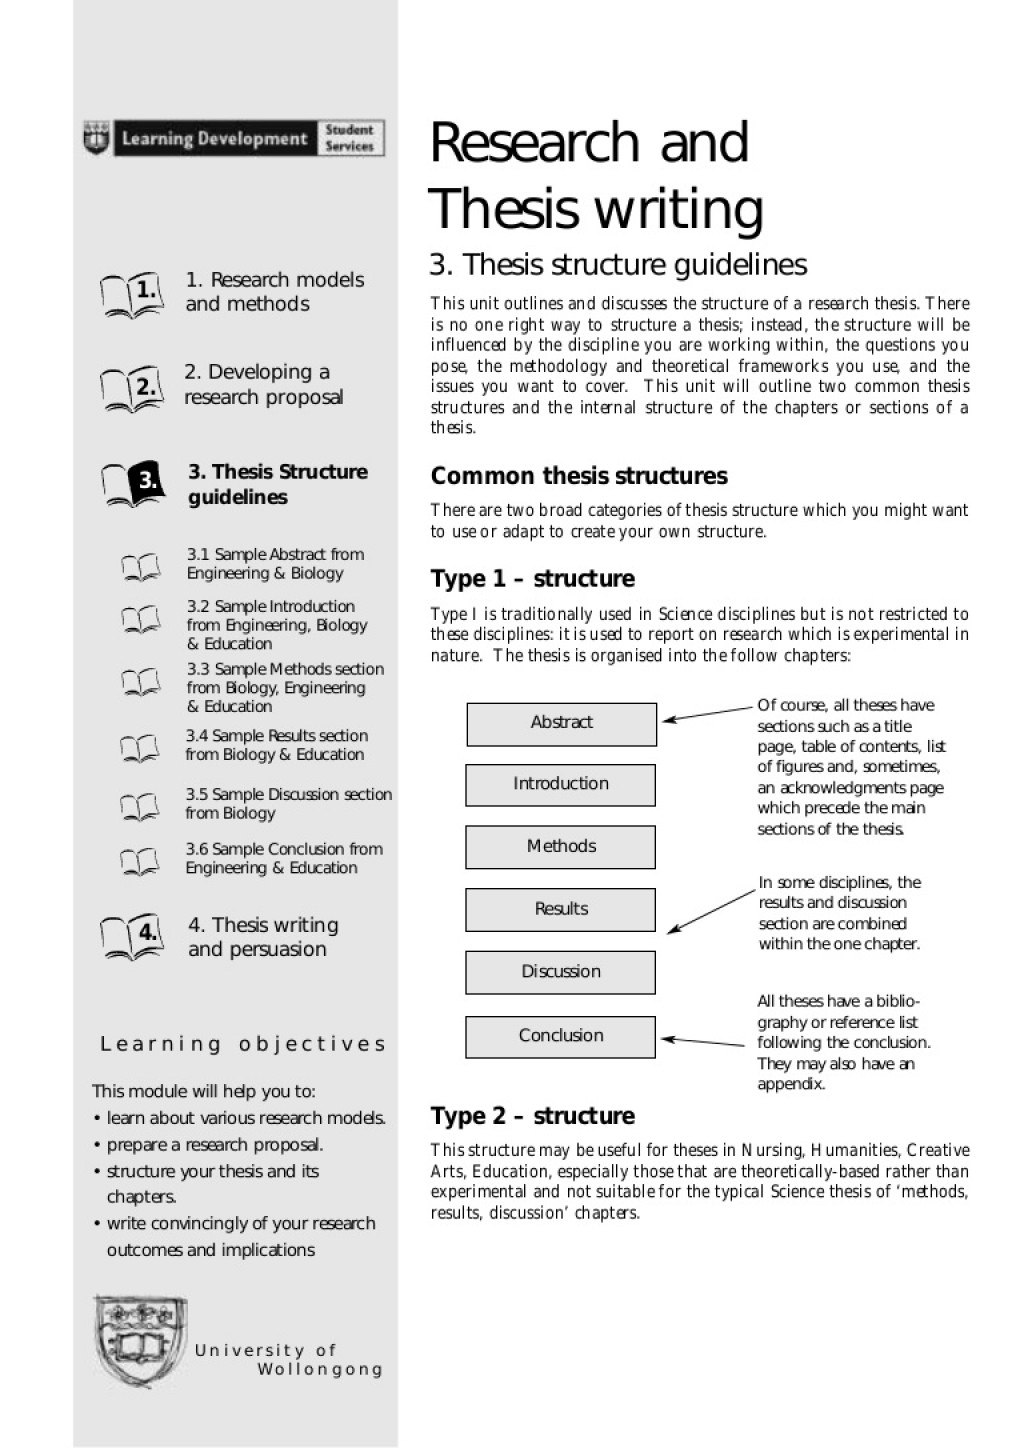 019 How To Write Research Paper Methods Section Researchtheseswriting Phpapp01 Thumbnail Phenomenal A The Of Wallet Quantitative Large